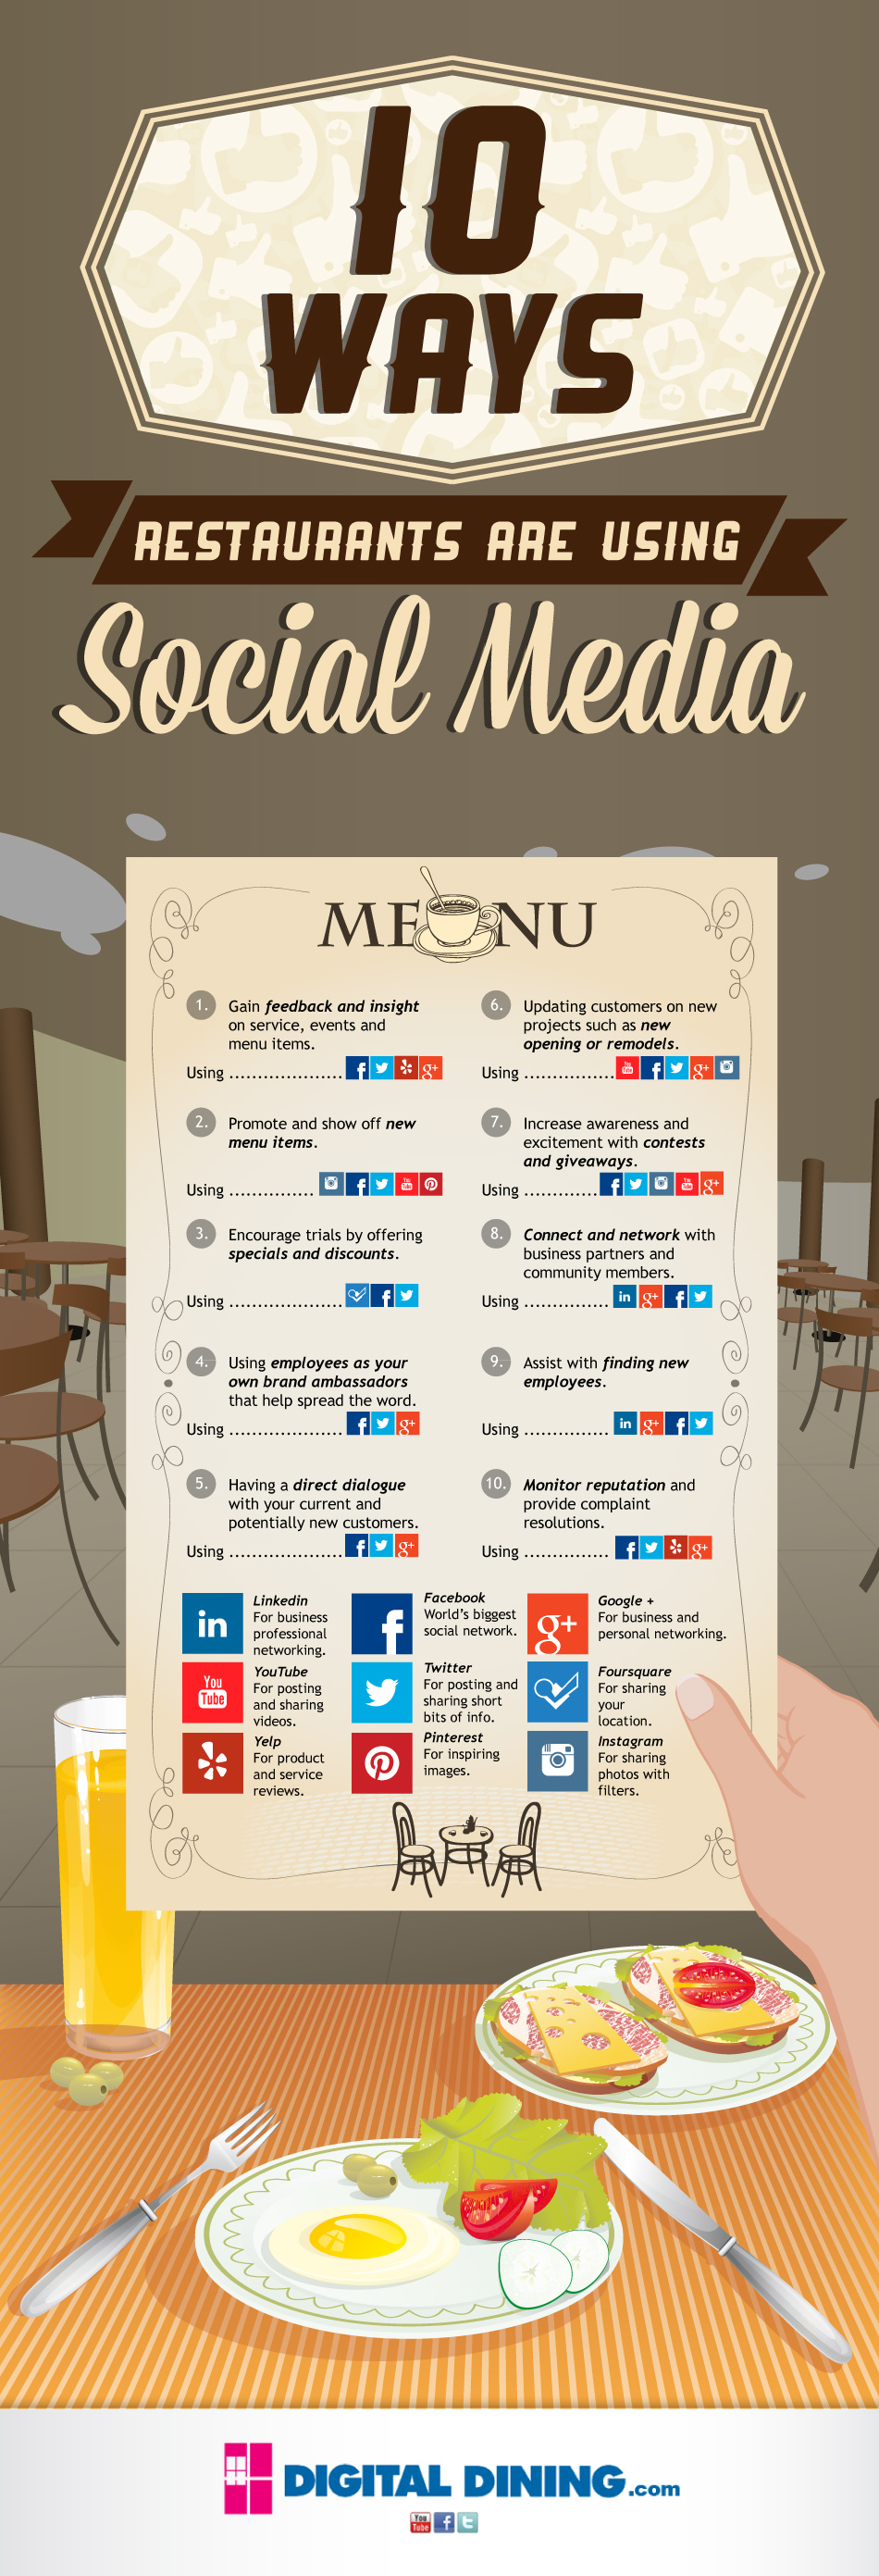 CDG Leisure > Boost Your Restaurant Through The Use Of Social Media!